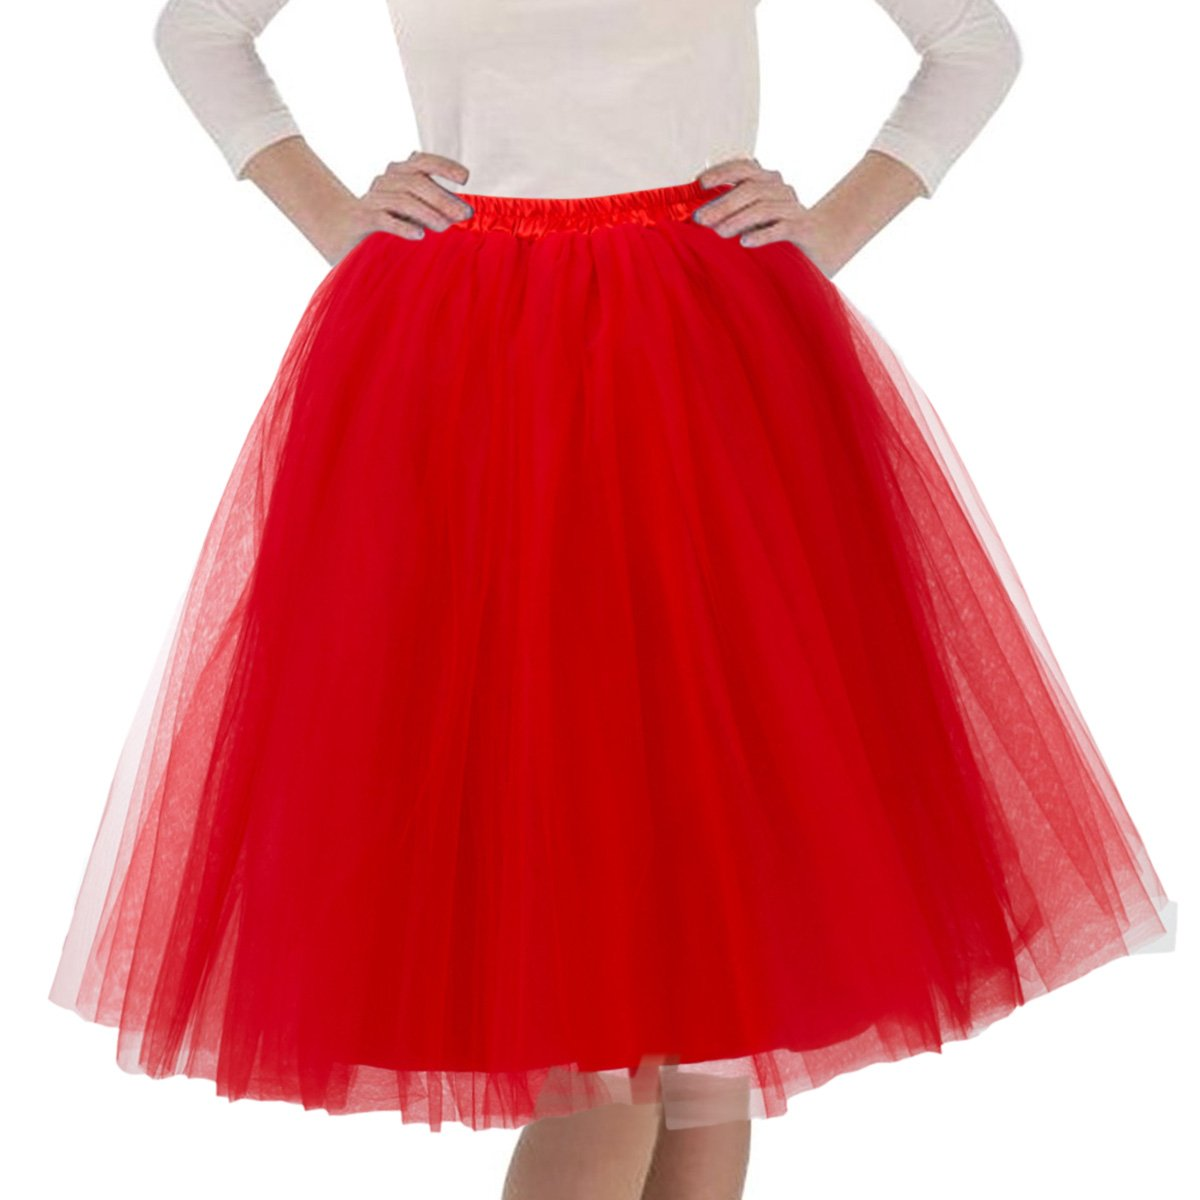 Quesera Women's Layered Tutu A Line Knee Length Elastic Waistband Puffy Tulle Skirt,Red,Free size fit in 2-12